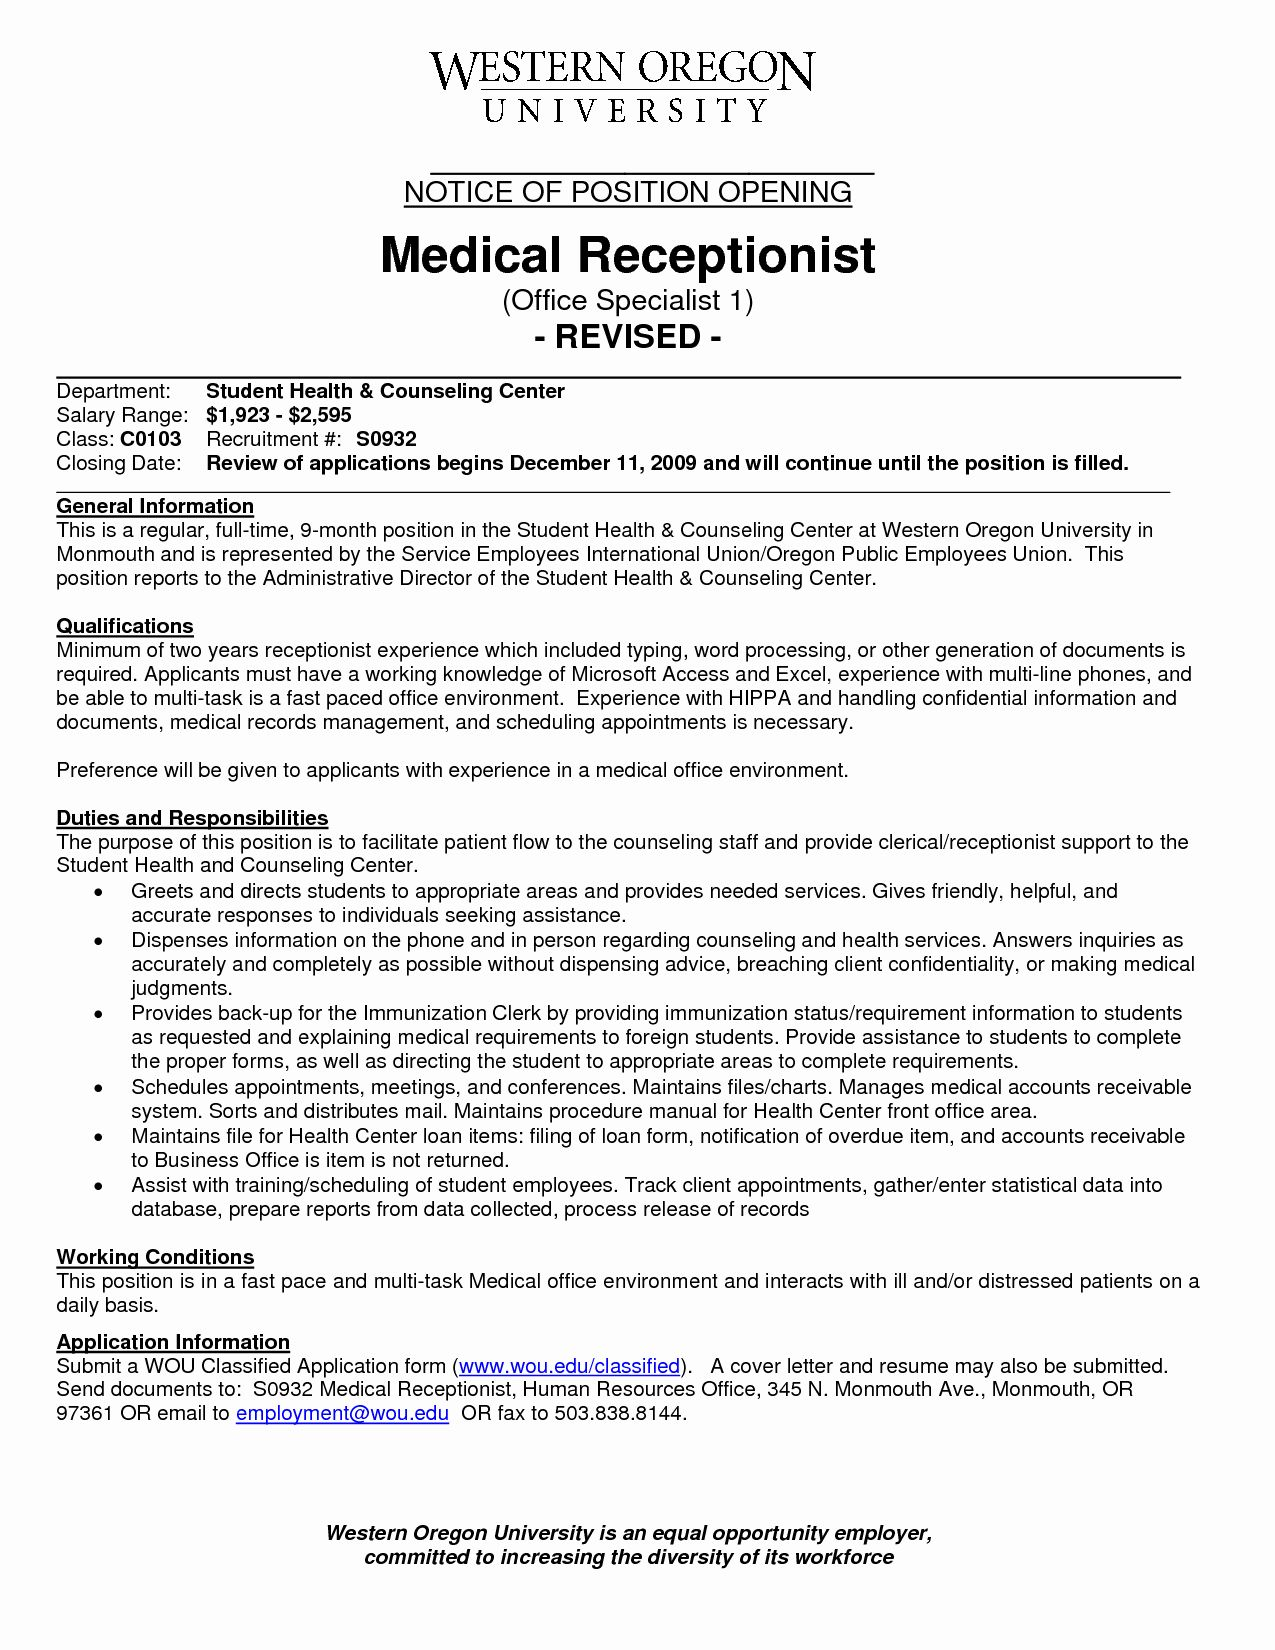 Resume And Cover Letter Help Near Me